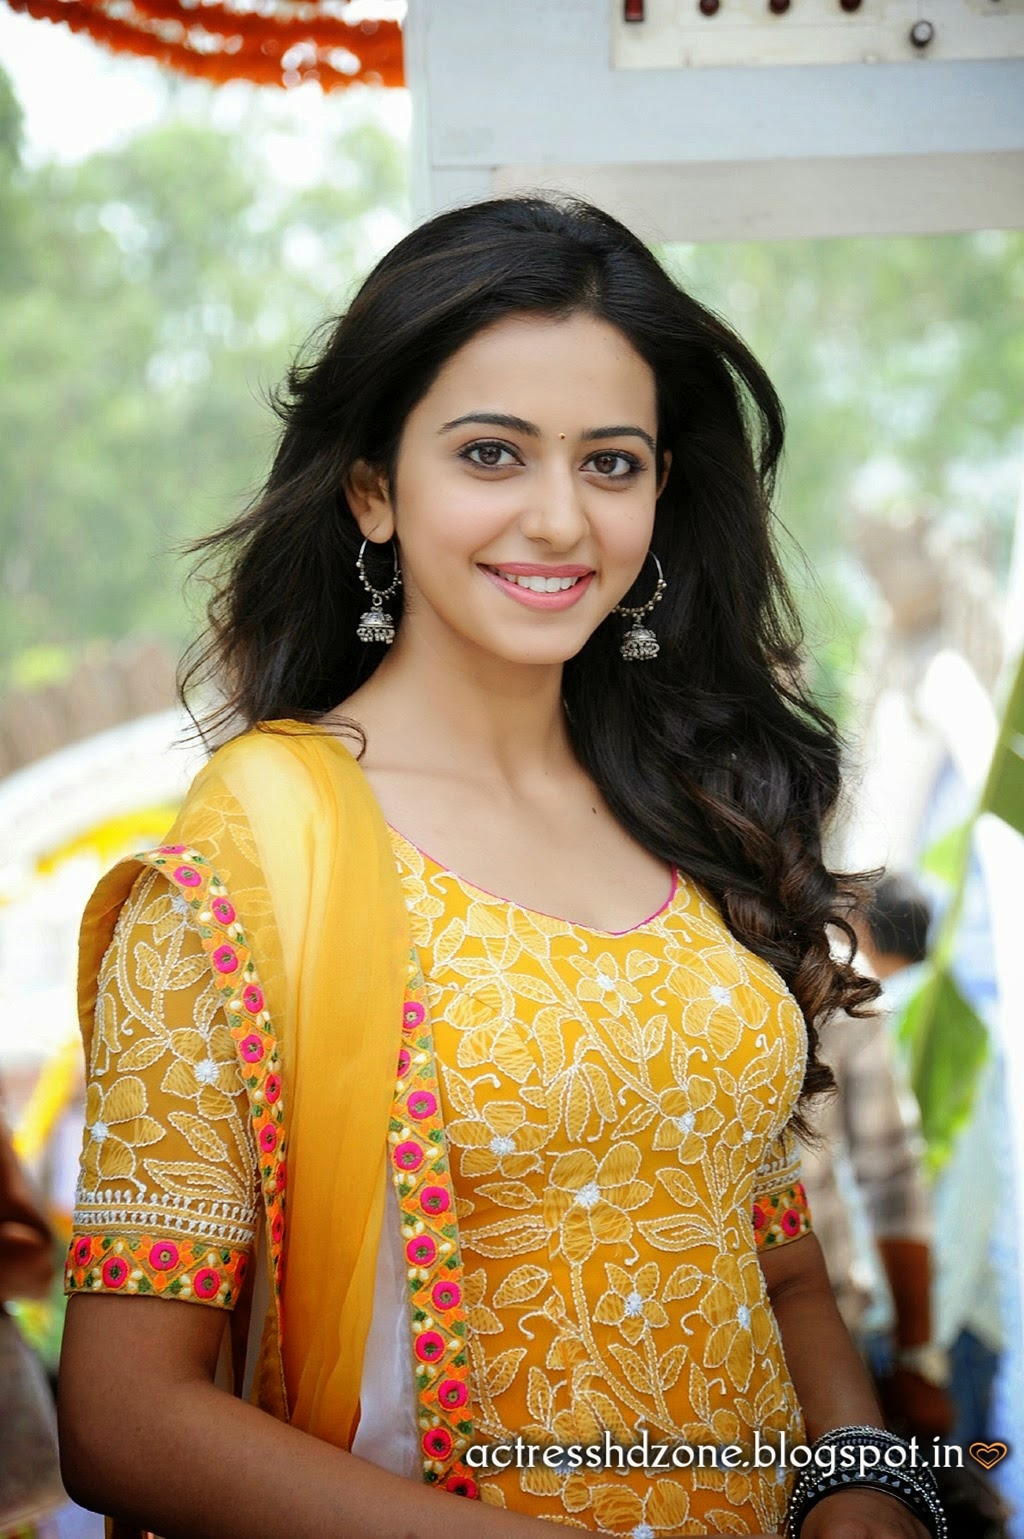 South Indian Actress Wallpapers In Hd Rakul Preet Sing Full Hd Wallpapers In Yellow Dress-4986